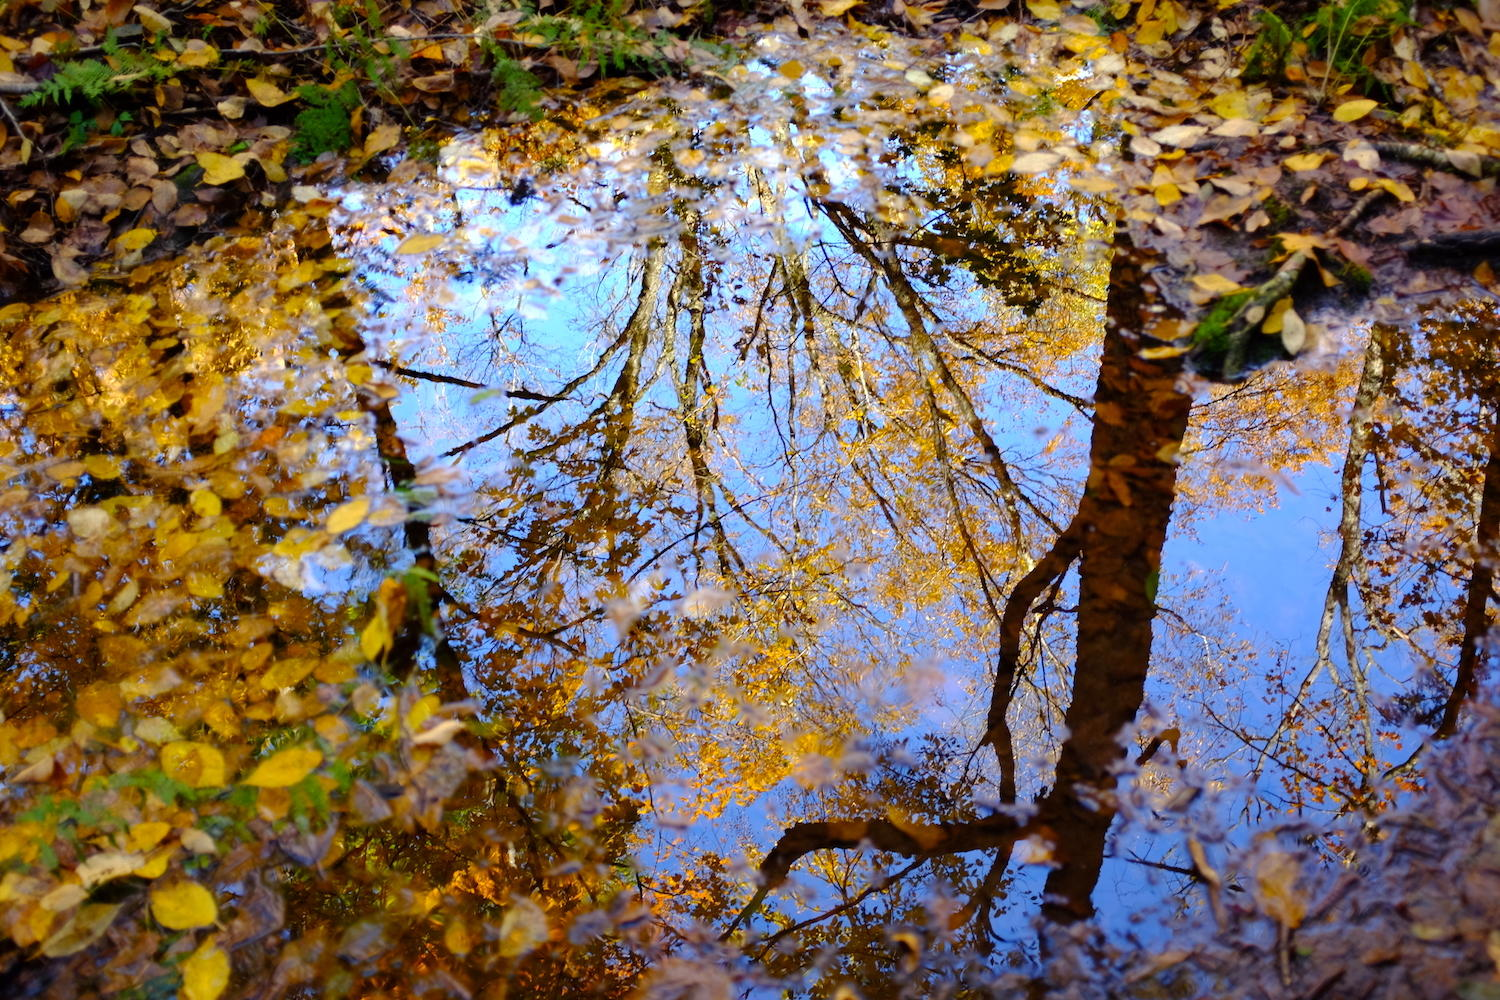 Reflection of yellow leaves in water